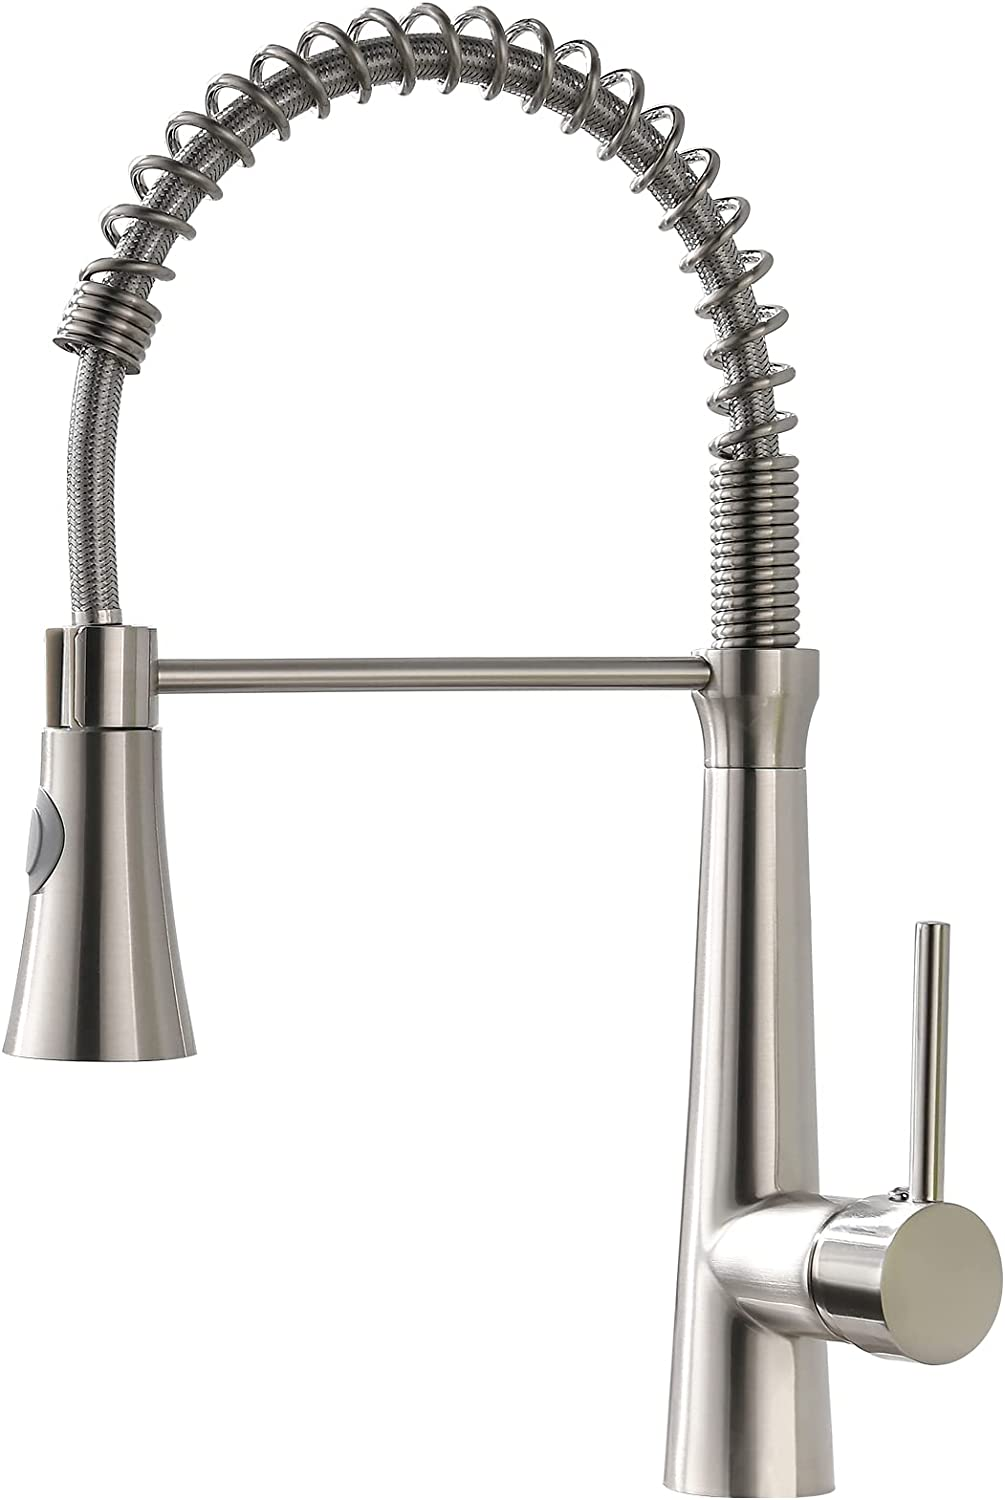 WANMAI Kitchen Faucets with Pull Down Sprayer Single Handle High Arc Kitchen Sink Faucet, Brushed Nickel Kitchen Faucet - -